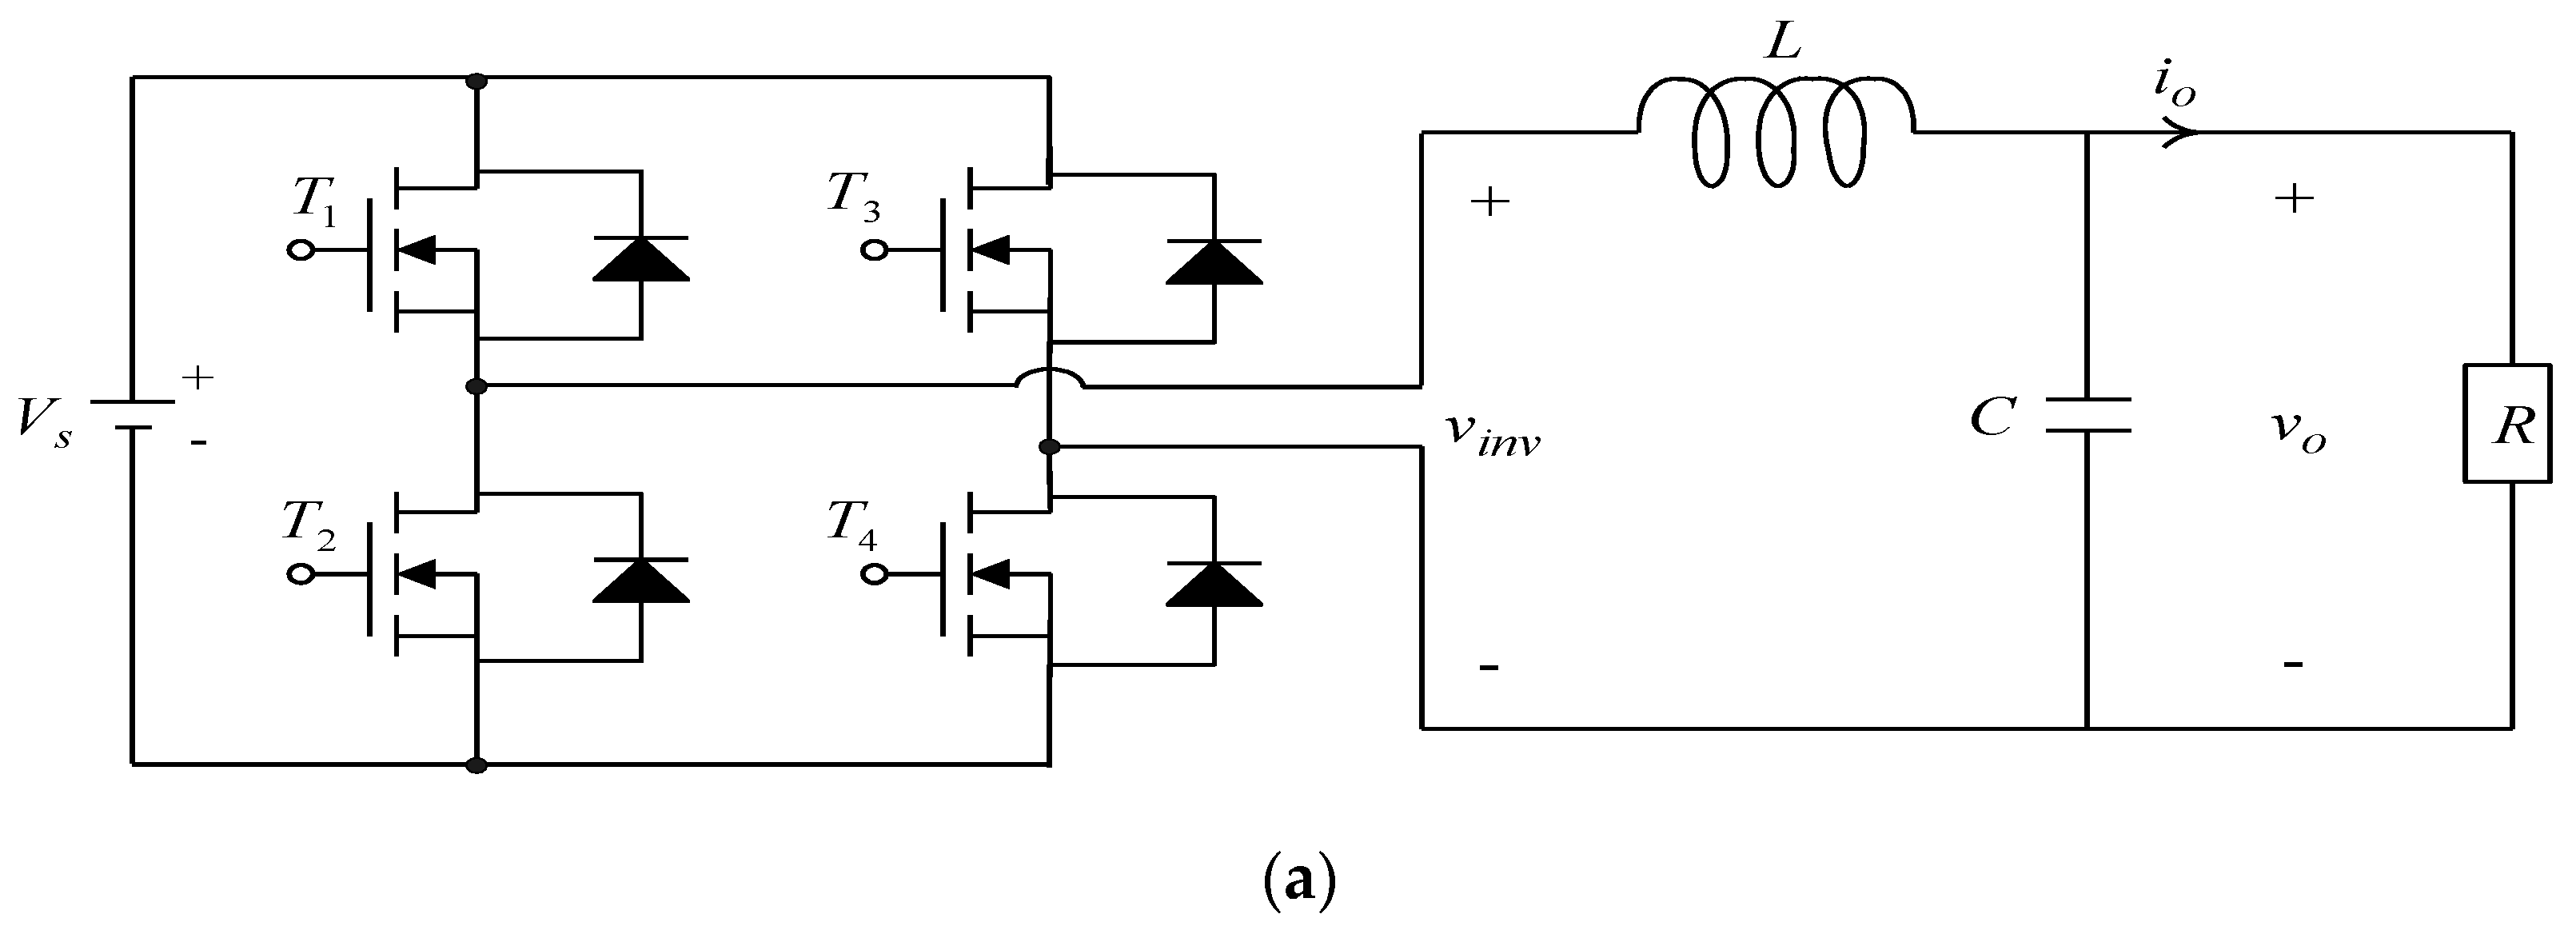 Energies Free Full Text Study And Application Of Intelligent Pulse Width Modulator Circuit Diagram No